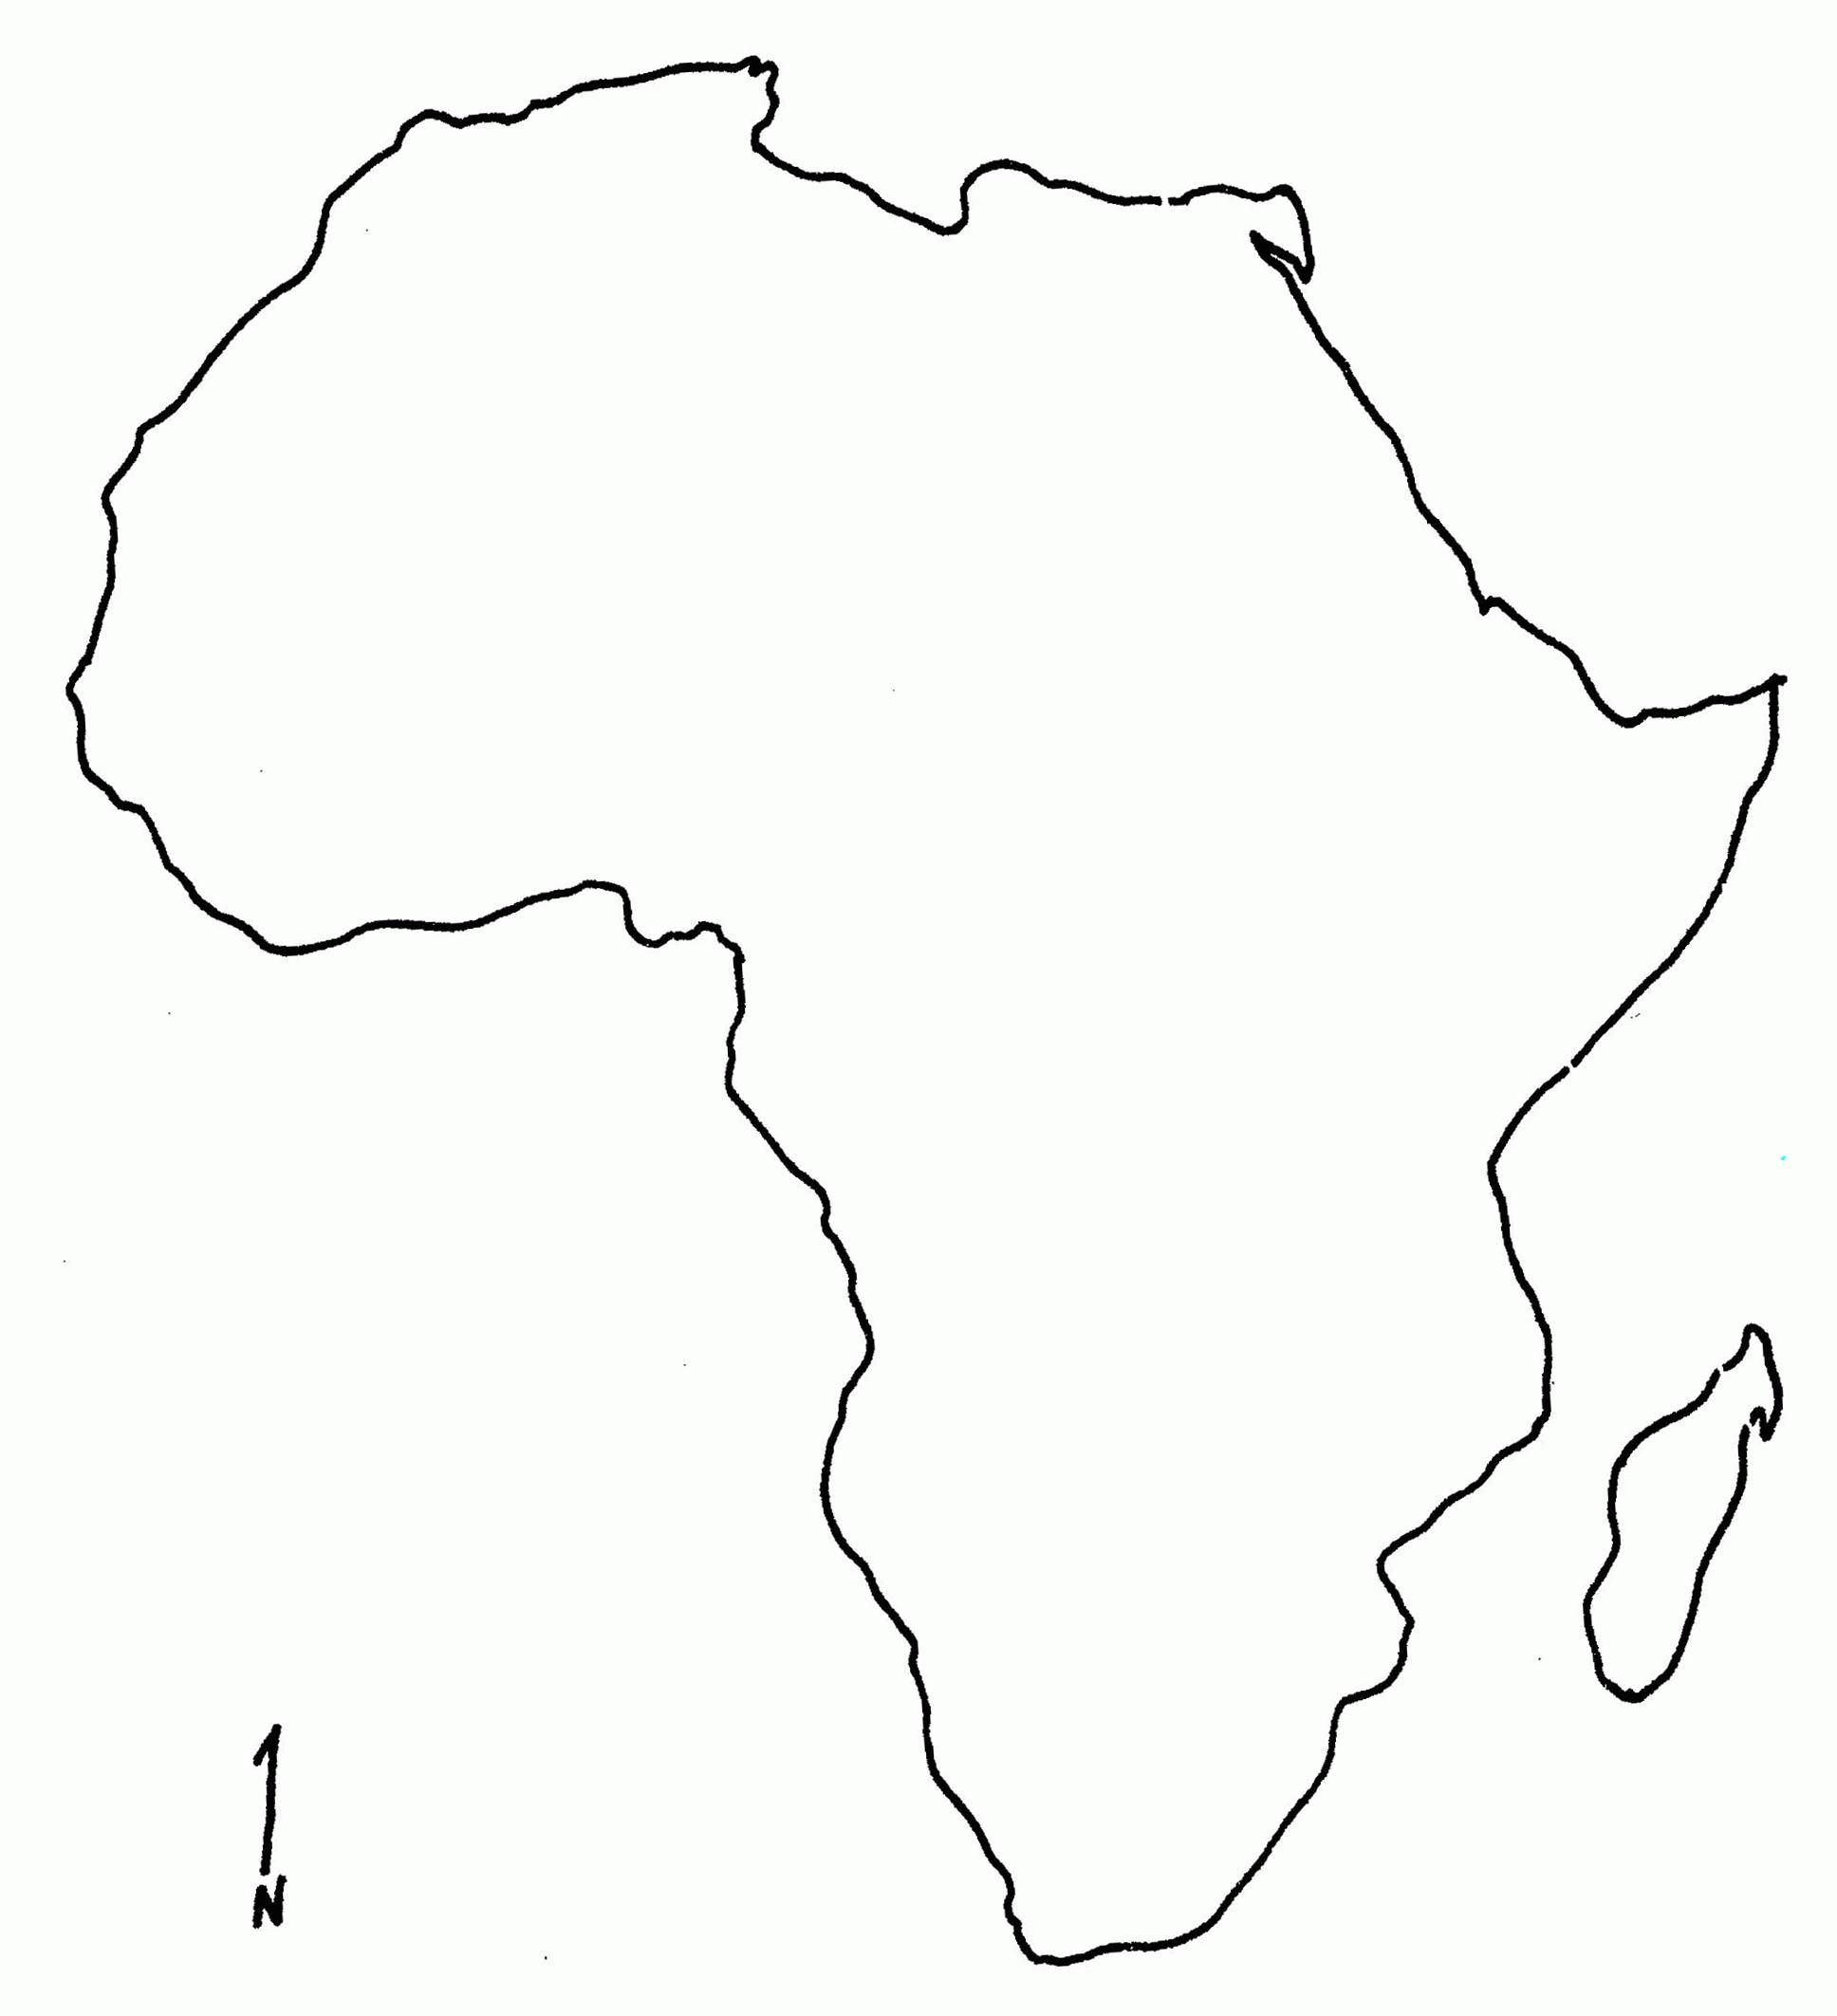 photograph regarding Blank Map of Africa Printable referred to as Blank Map Of Western Africa Jackenjuul